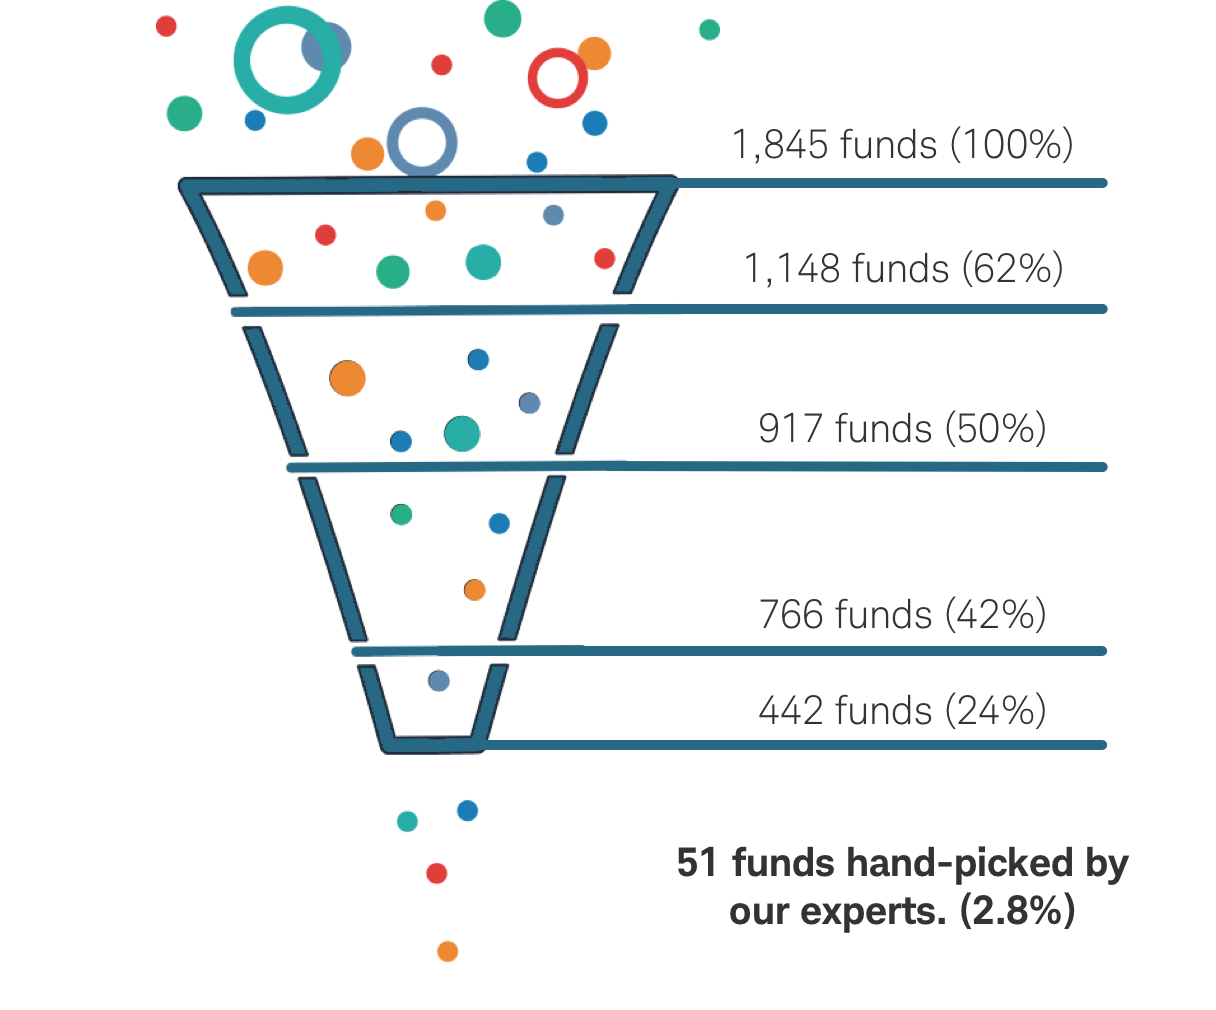 1,845 funds (100%), 1,148 funds (62%), 917 funds (50%), 766 funds(42%), 442 funds (24%), 51 funds hand-picked by our experts (2.8%)